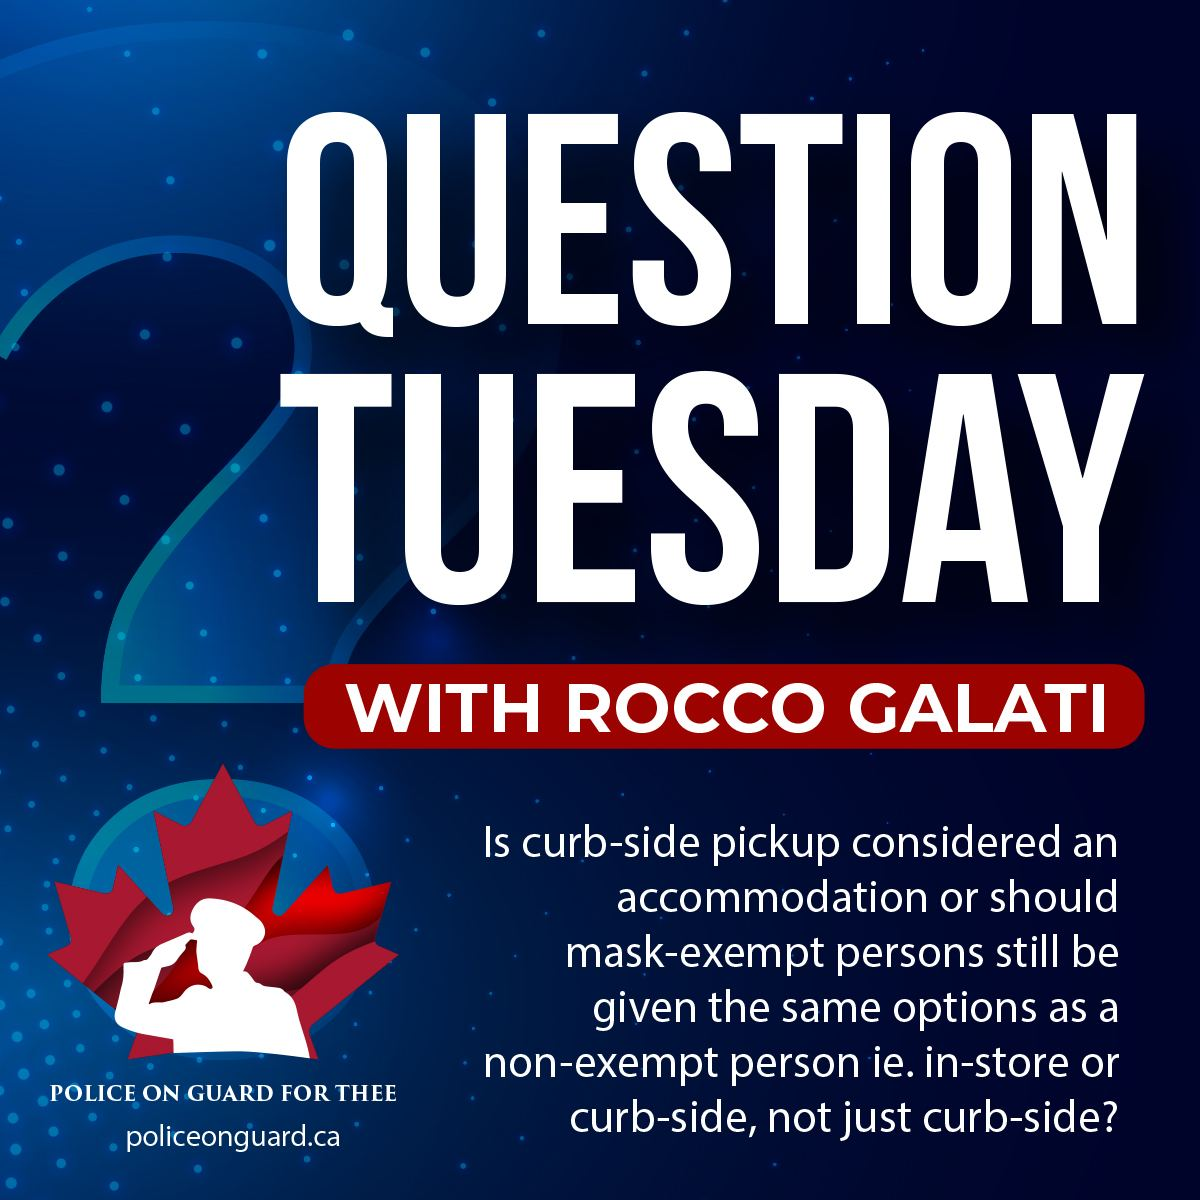 Question Tuesday with Rocco - Is curb-side pickup considered an accommodation?